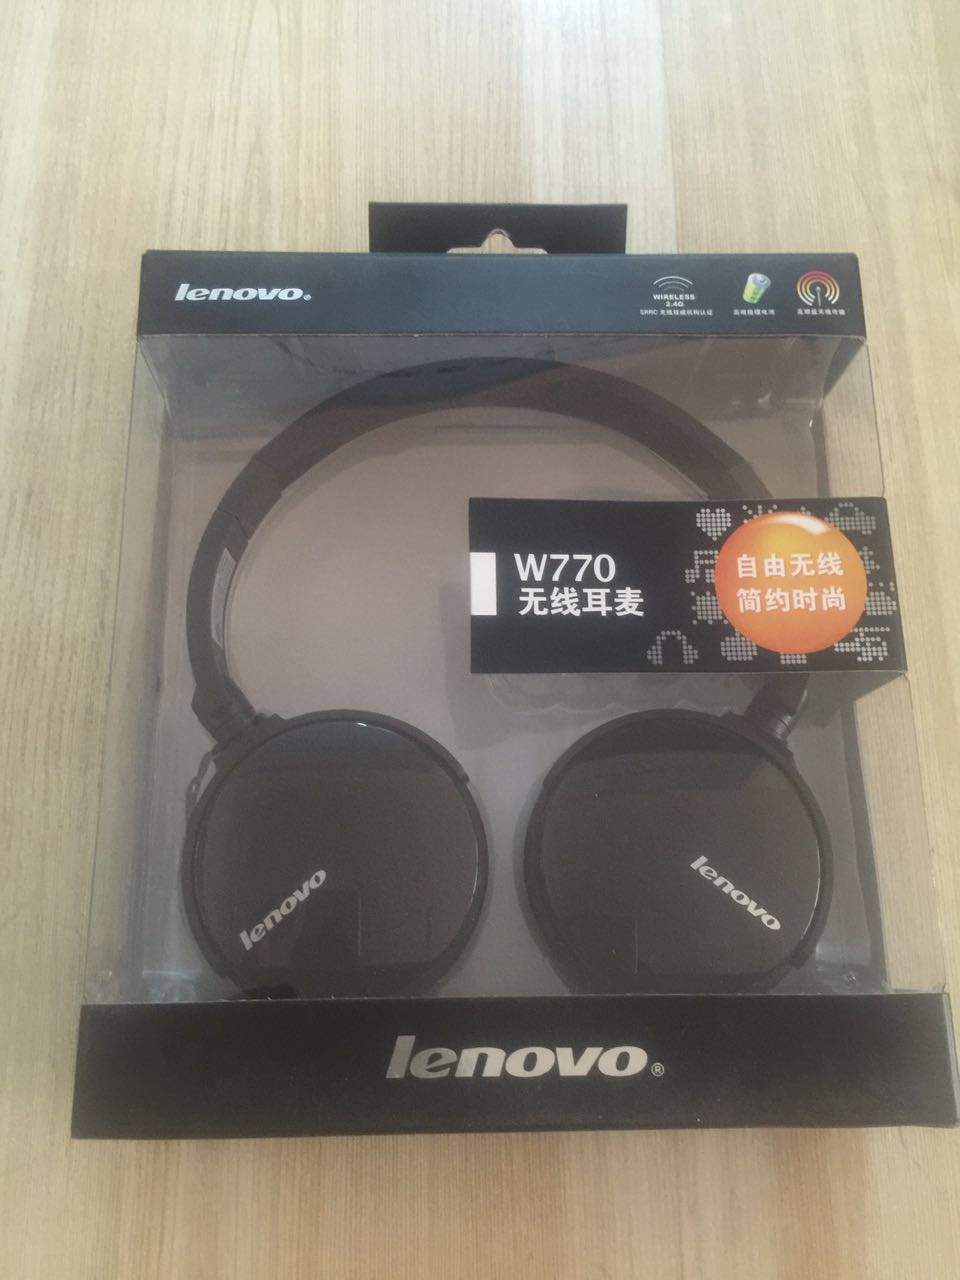 Lenovo/Lenovo W770 Wireless Headset Headset with Microphone Wireless Headset Ice City Direct